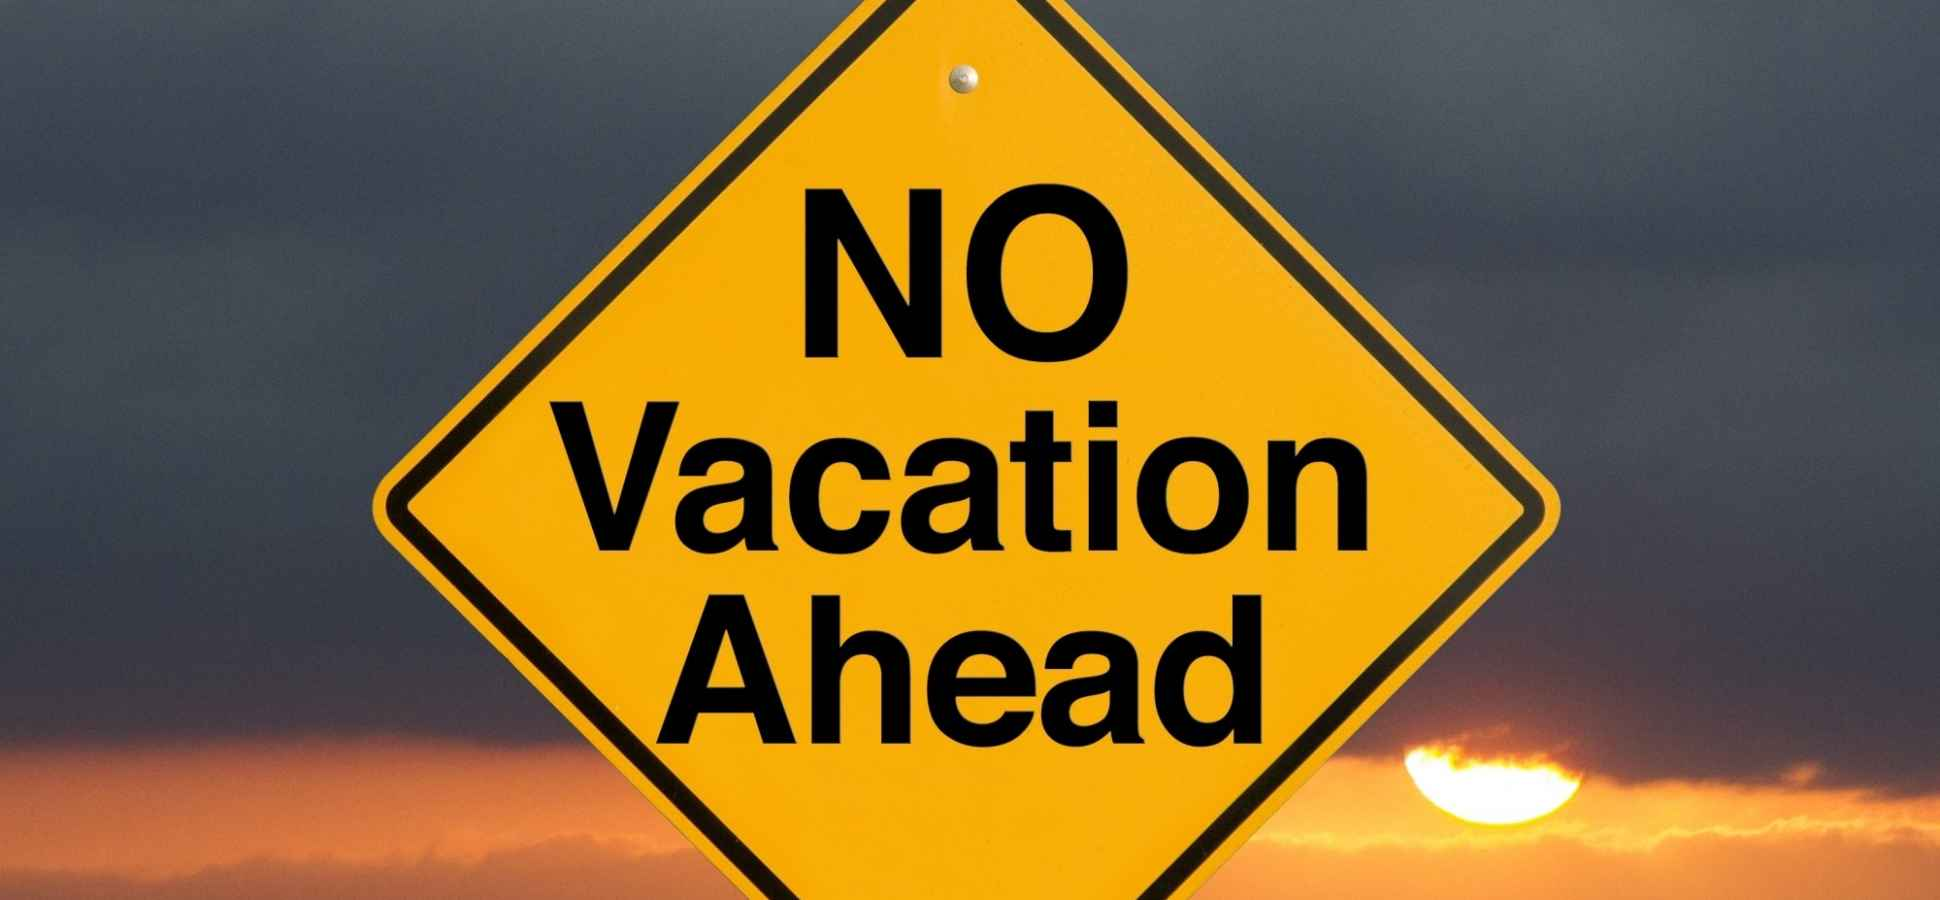 Need a Vacation but Can't Take the Time? Here's What to Do